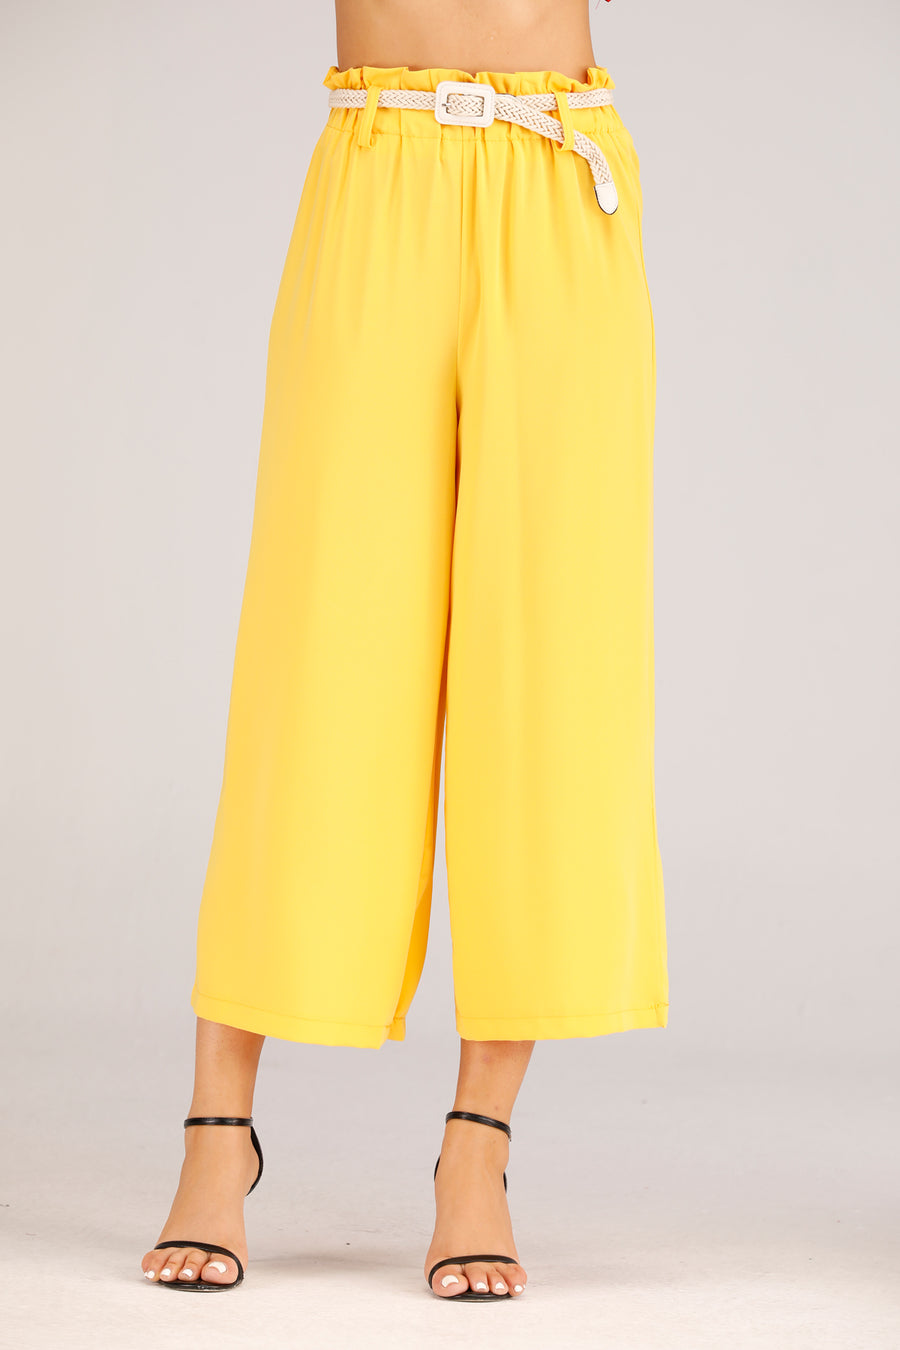 Mantra Pakistan Yellow Flowy Pants with Braided Belt | BOTTOMS